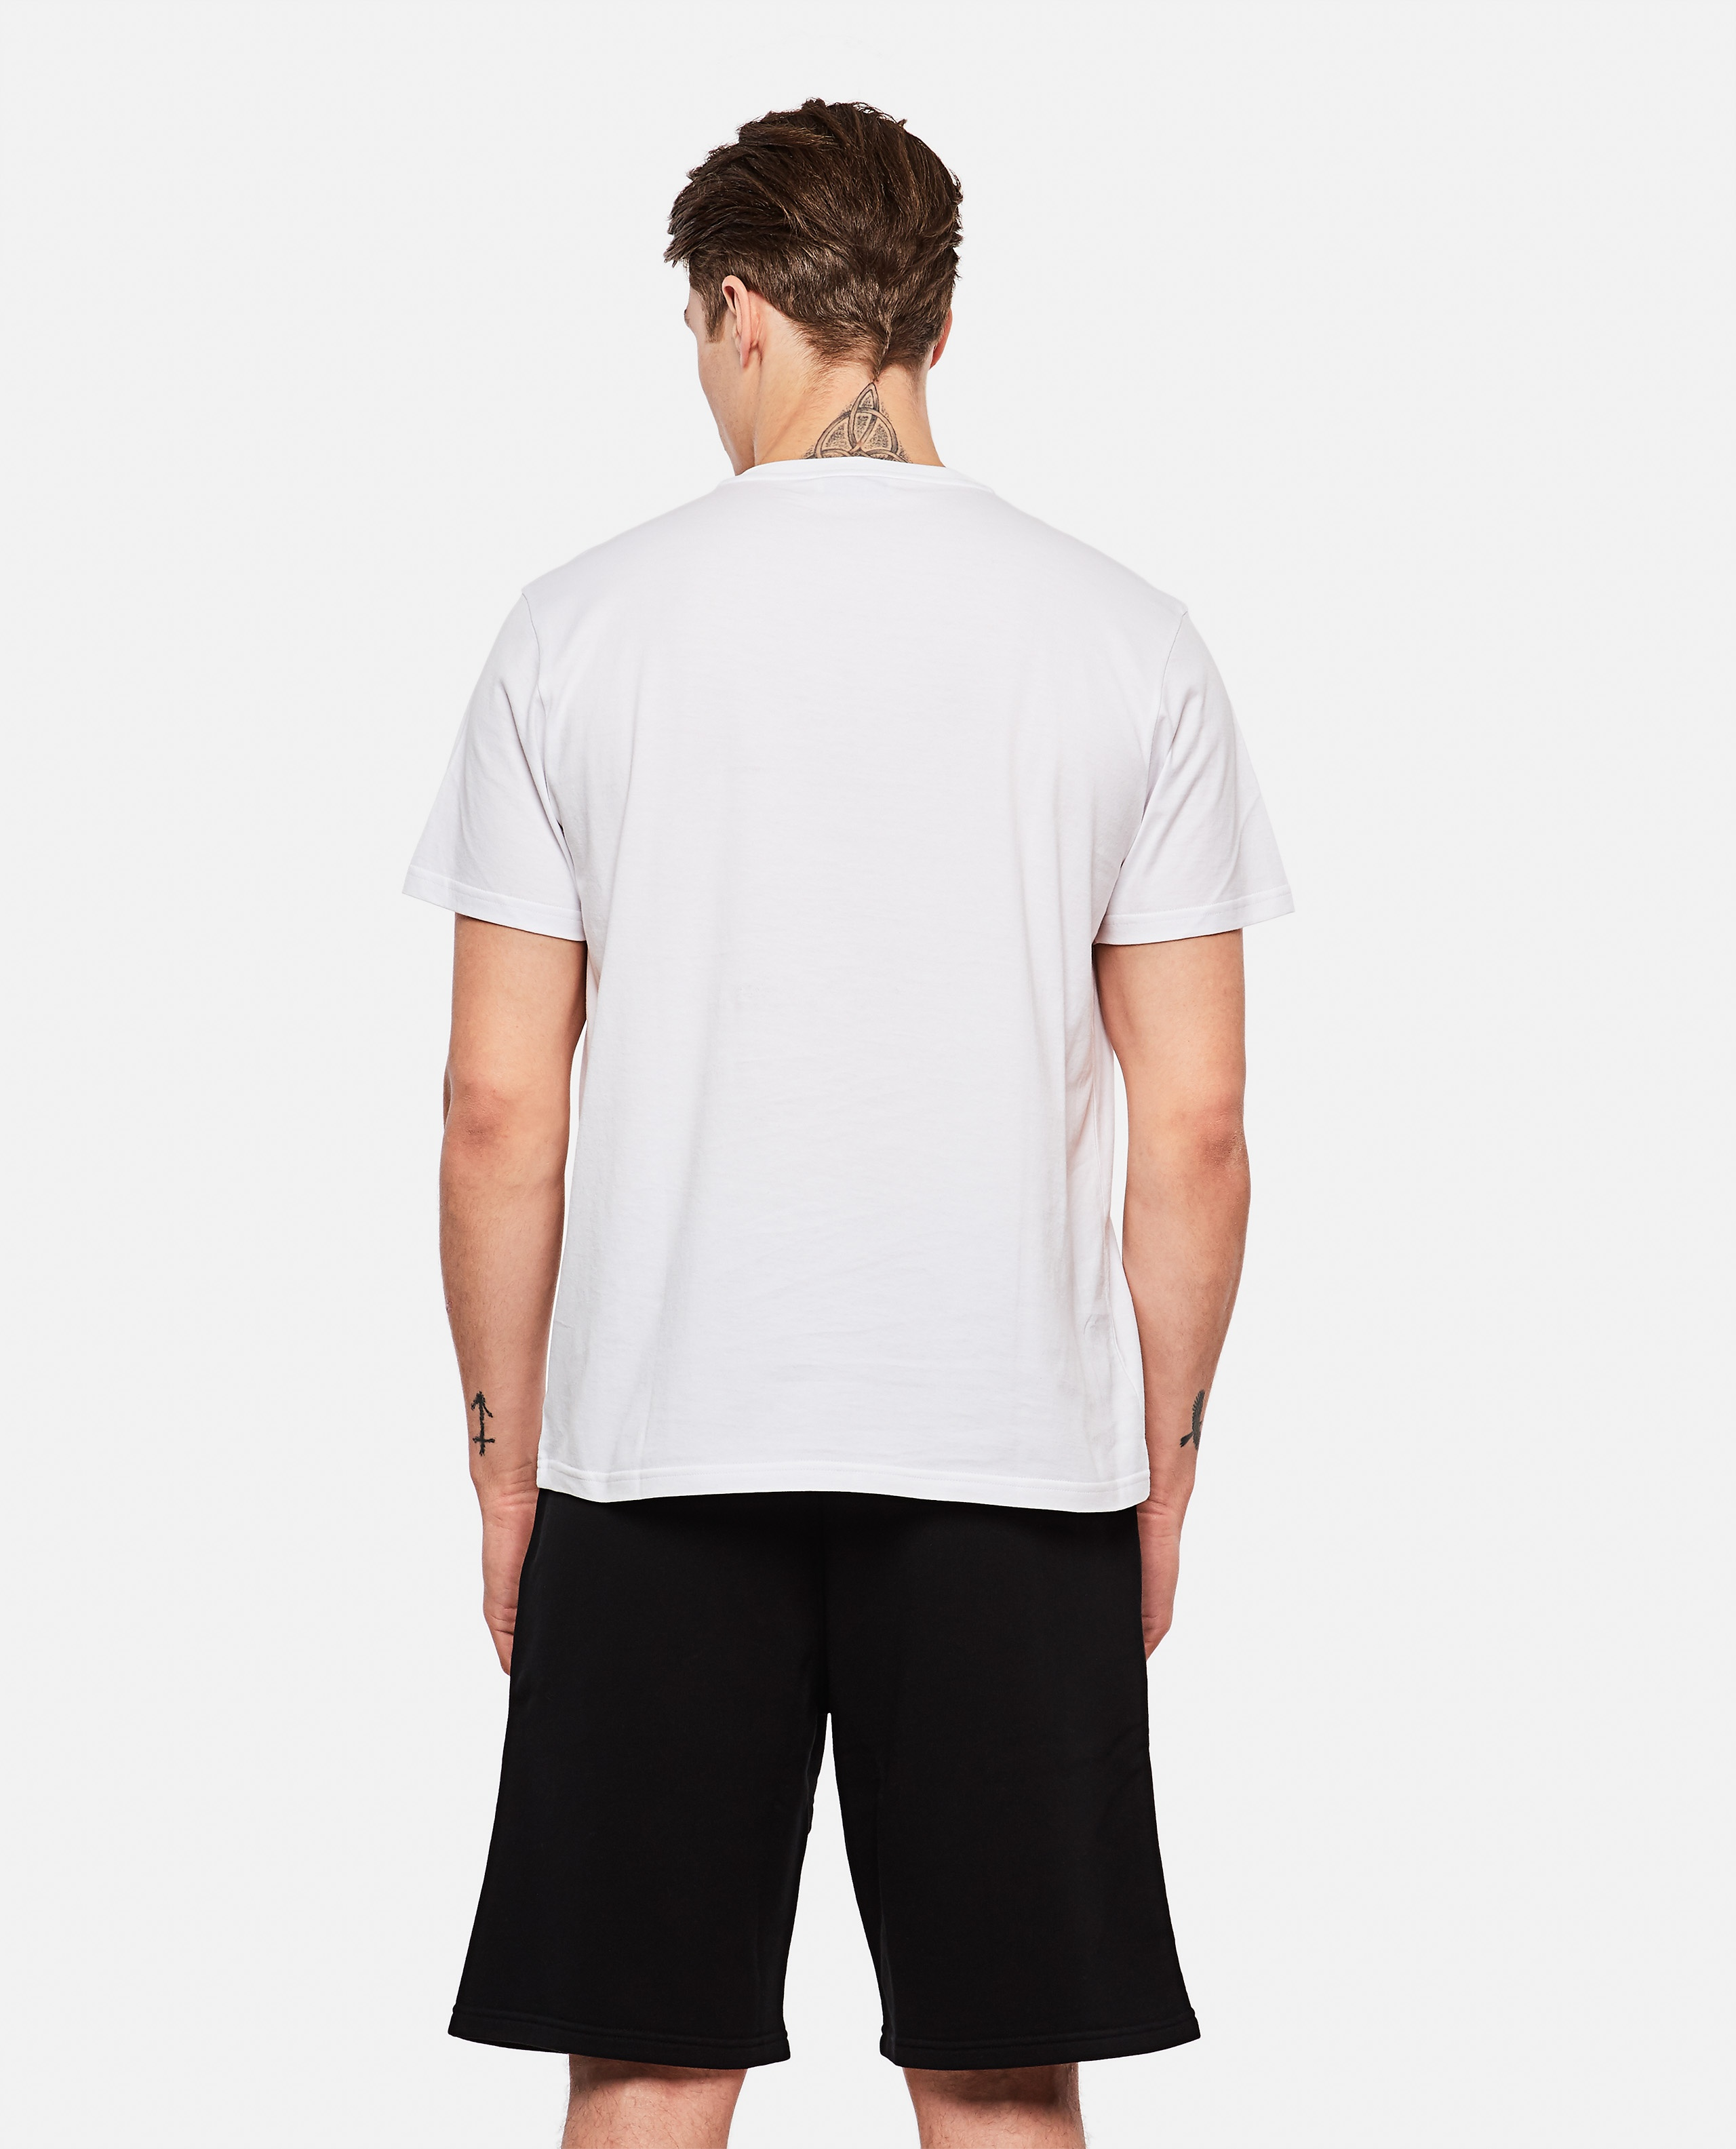 T-shirt with logo Men Givenchy 000226460033485 3